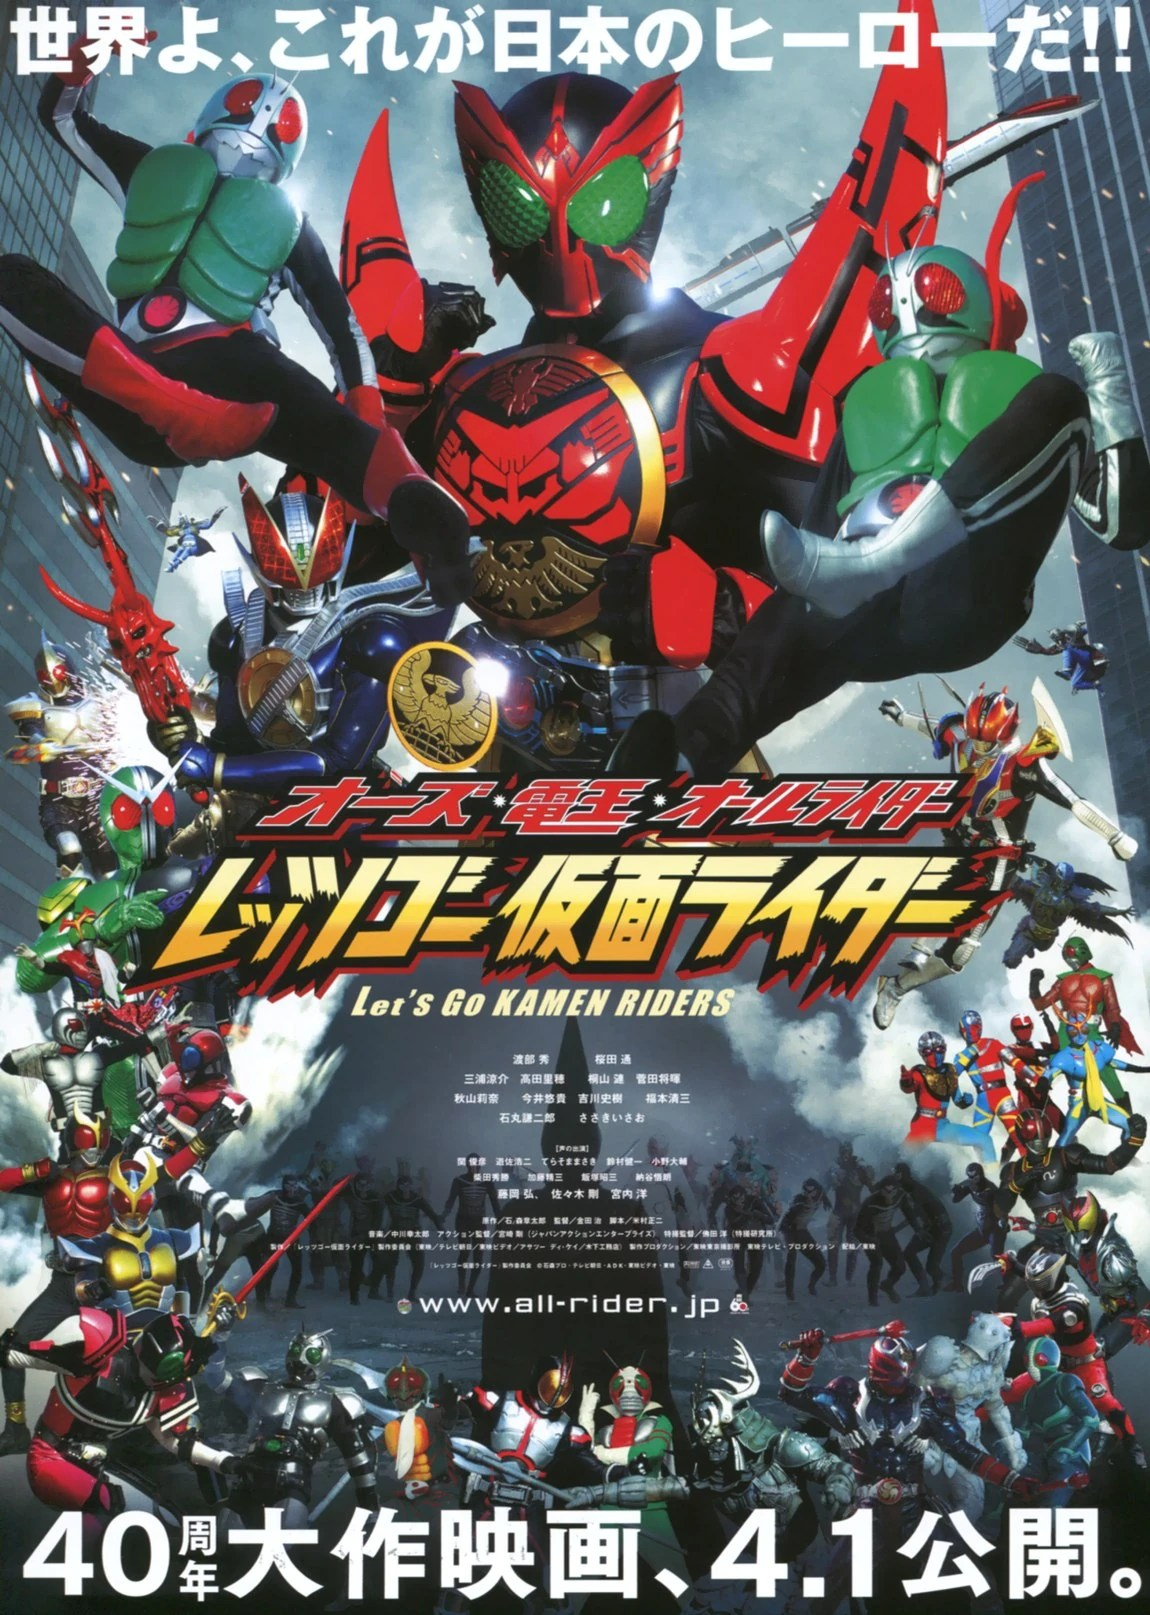 Download Kamen Rider Ryuki Sub Indo Batch : download, kamen, rider, ryuki, batch, Download, Kamen, Rider, Movie, Fasrprice